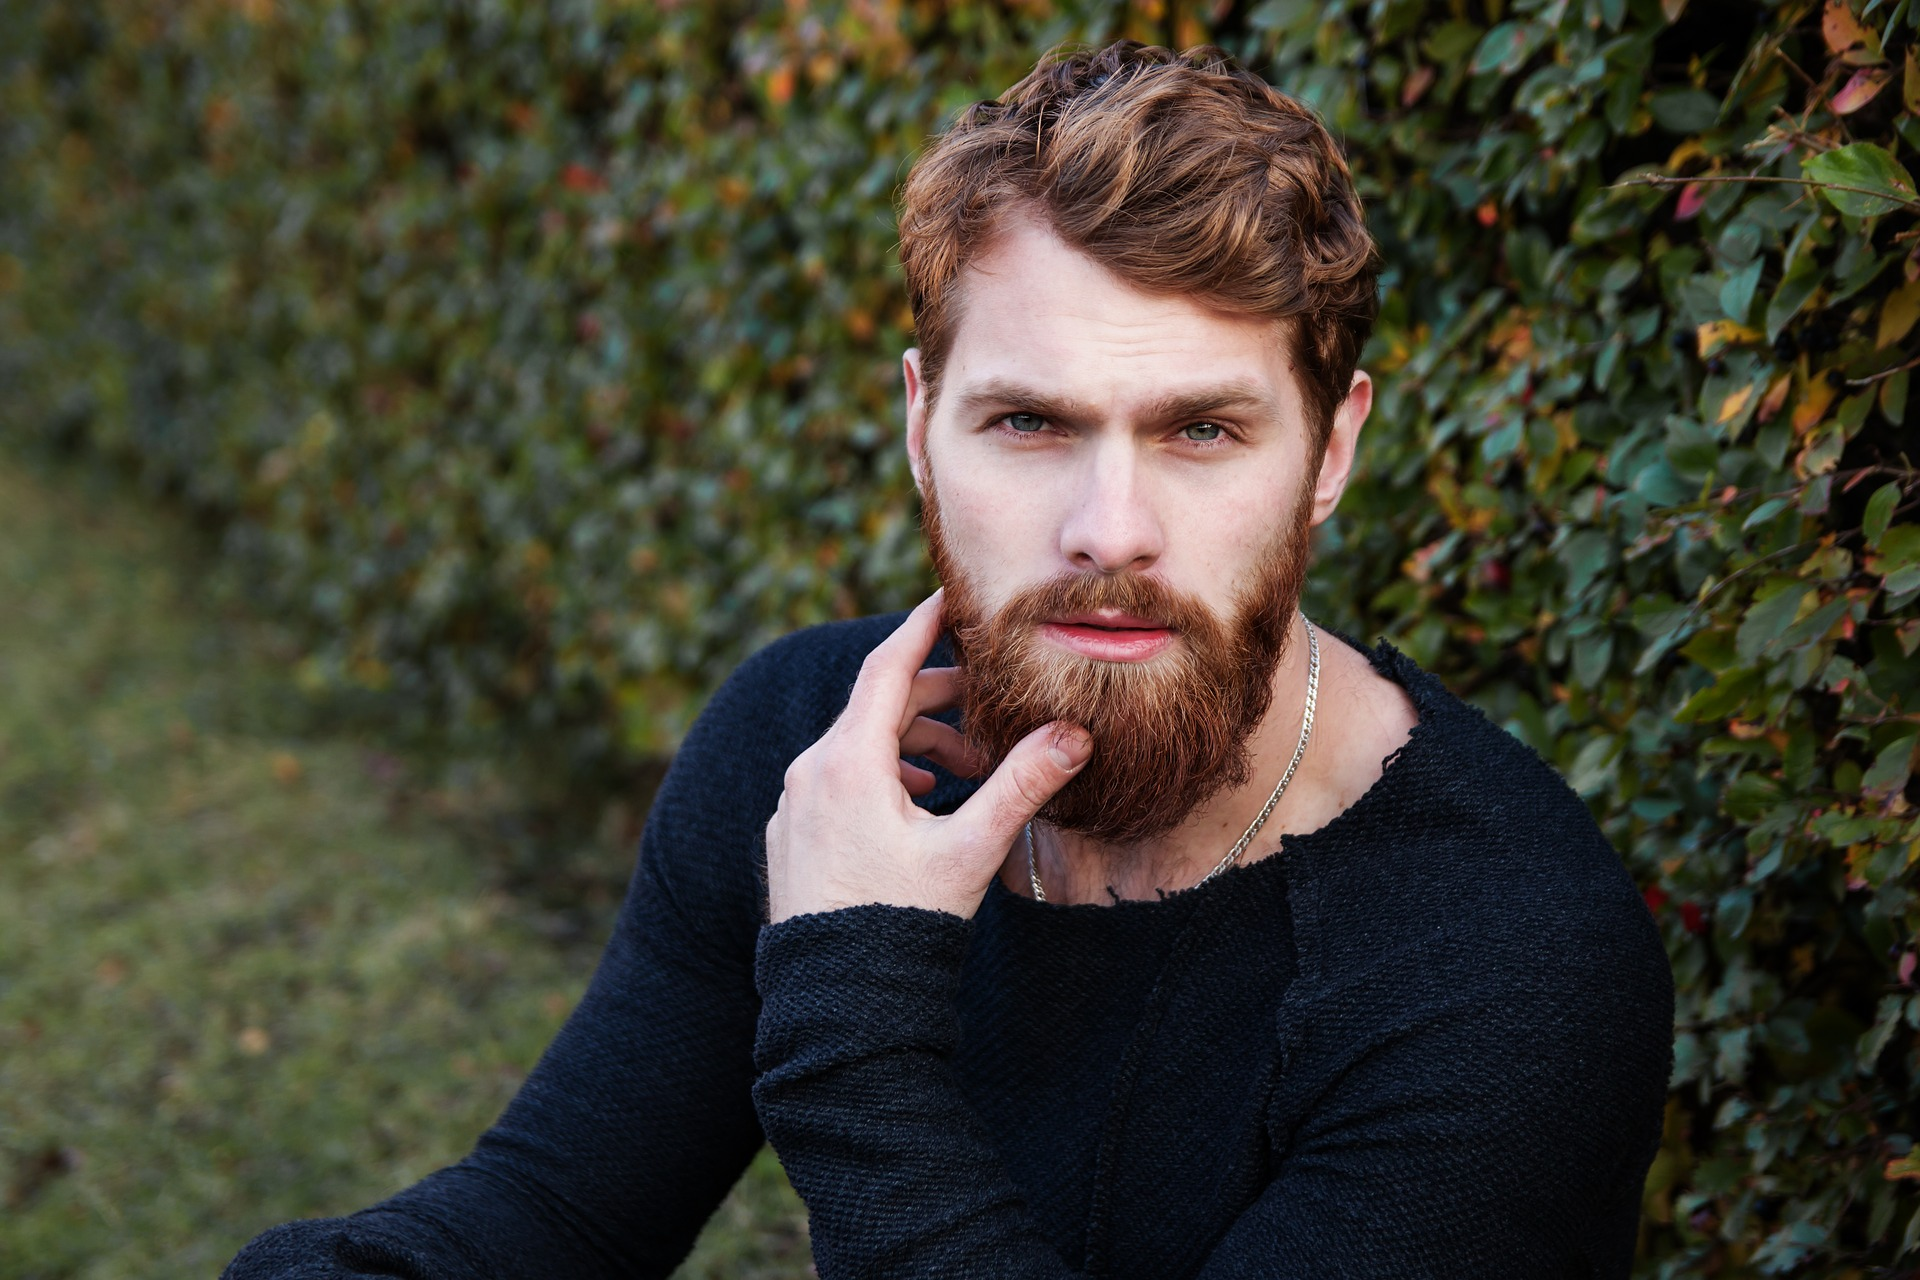 Beard Oil Guide - Beard Oil Benefits